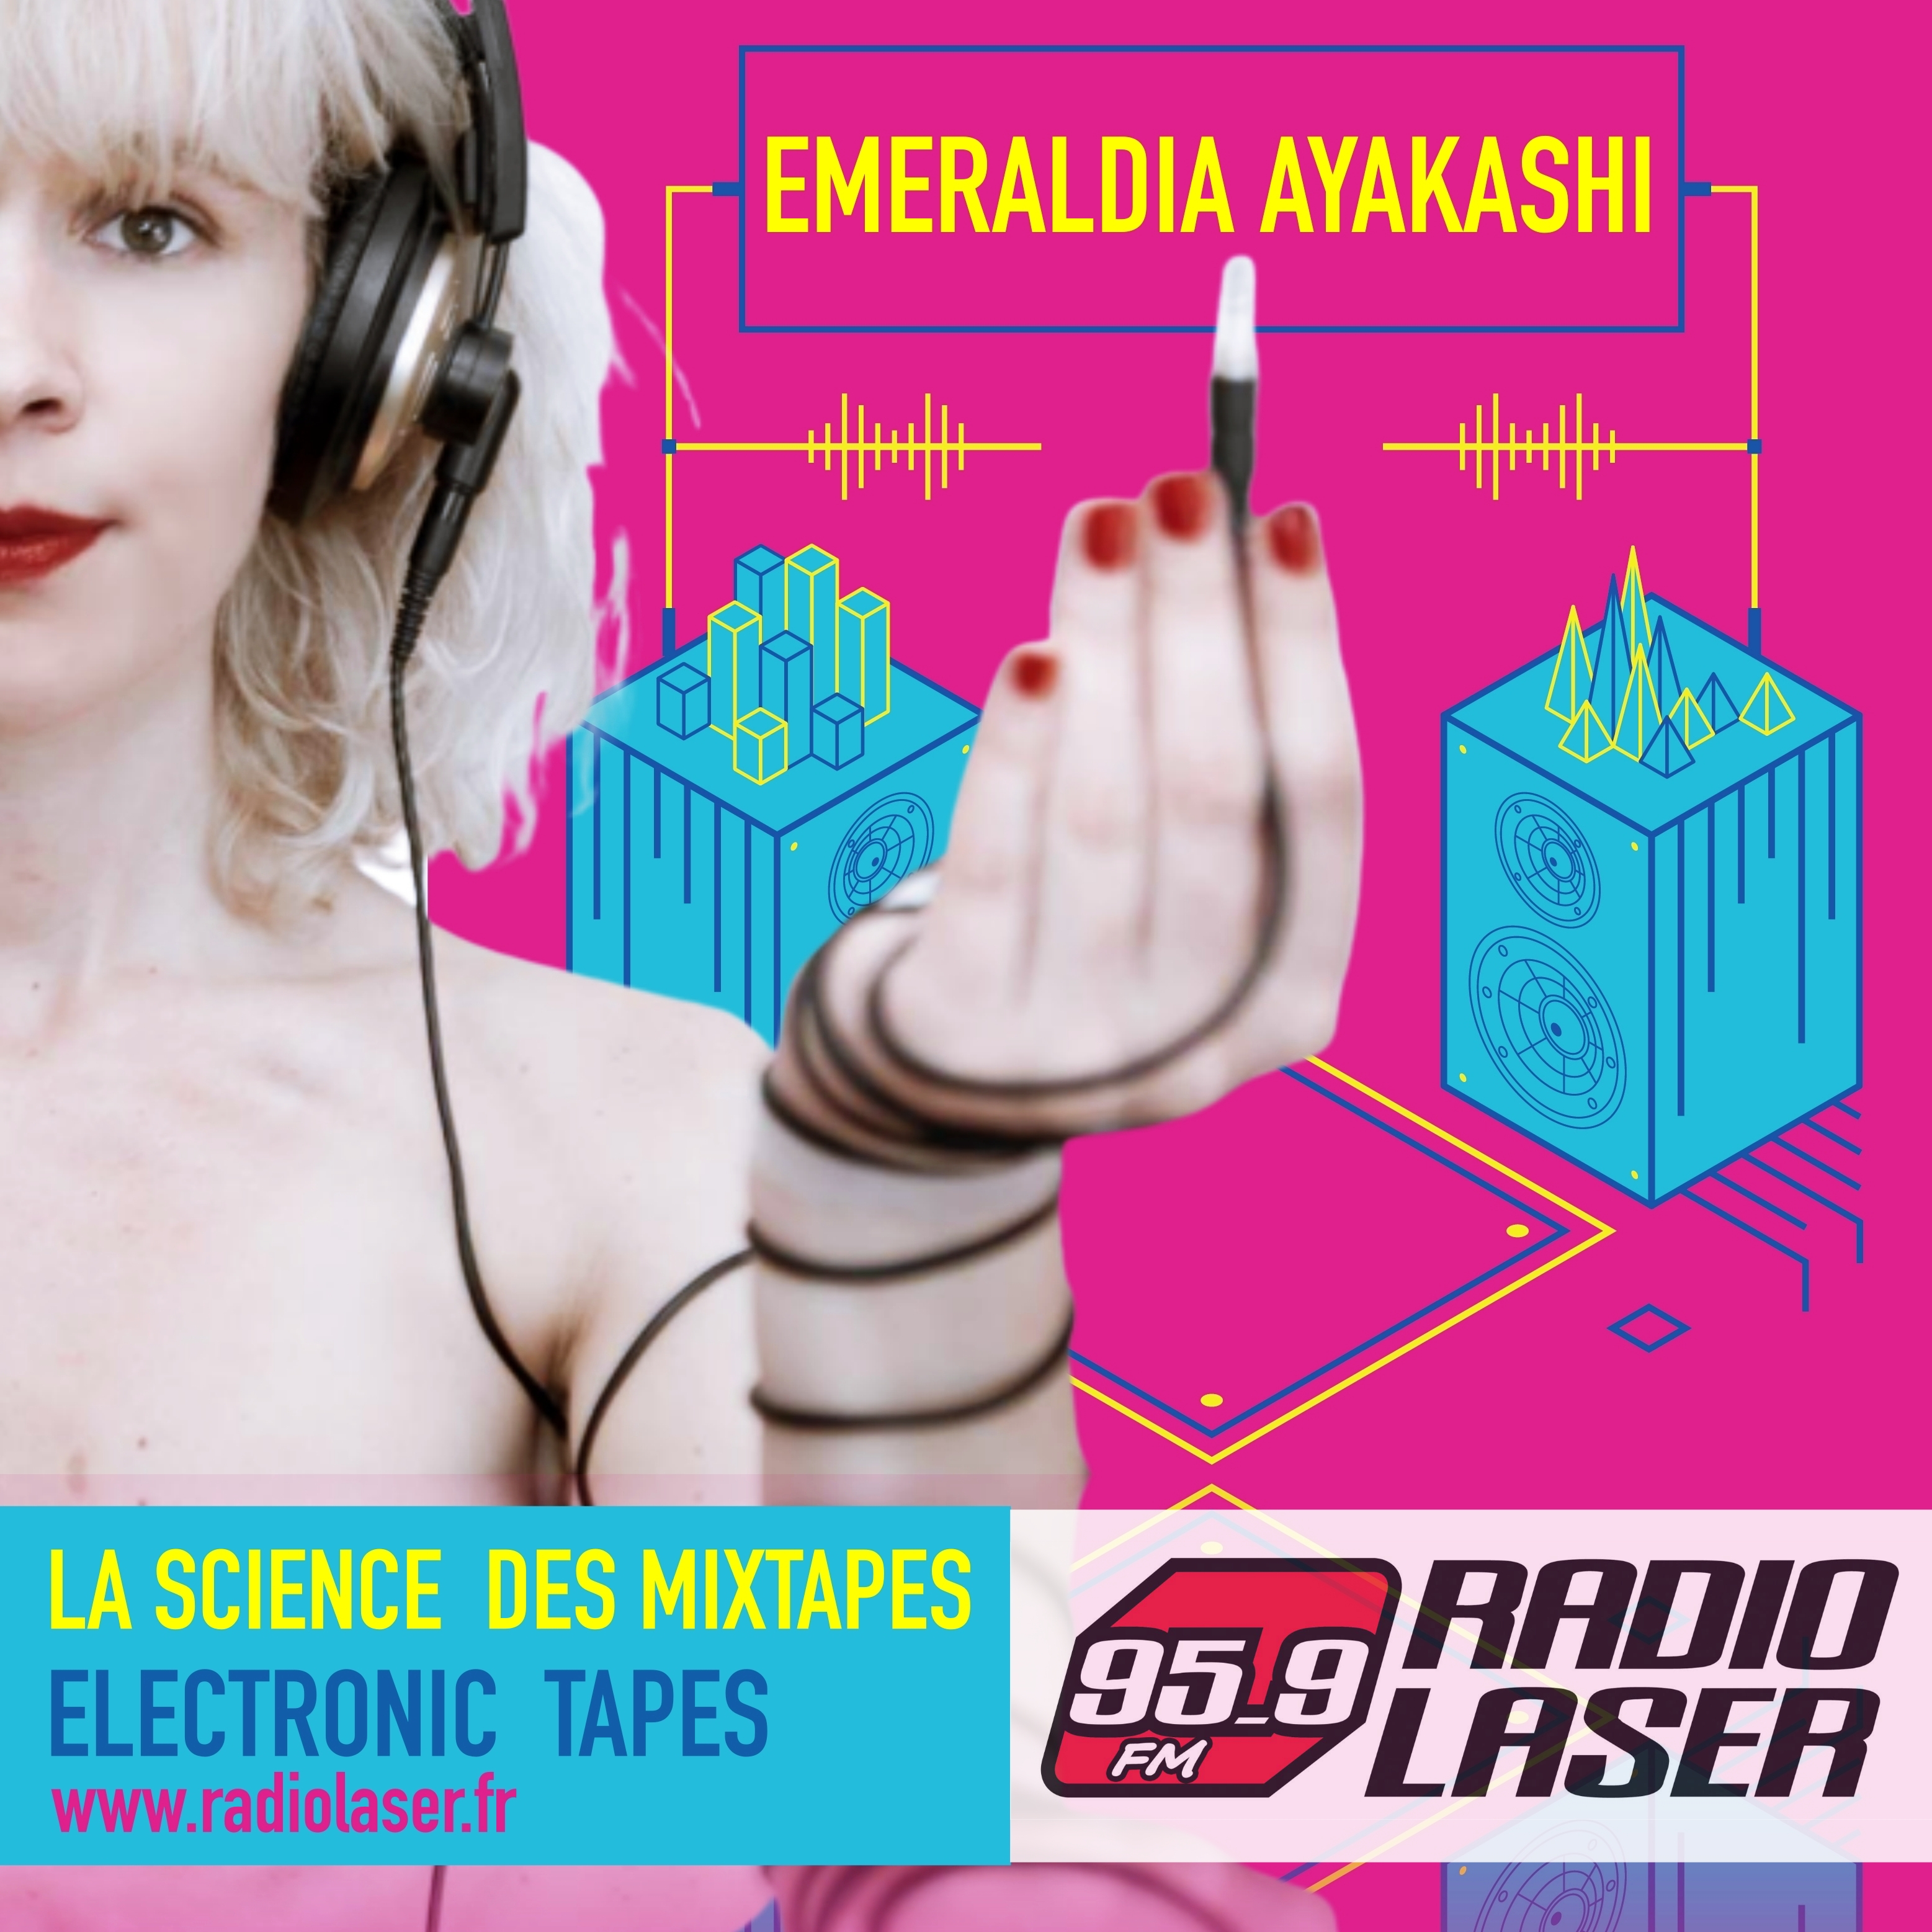 La Science des Mixtapes #11 mixée par Emeraldia Ayakashi